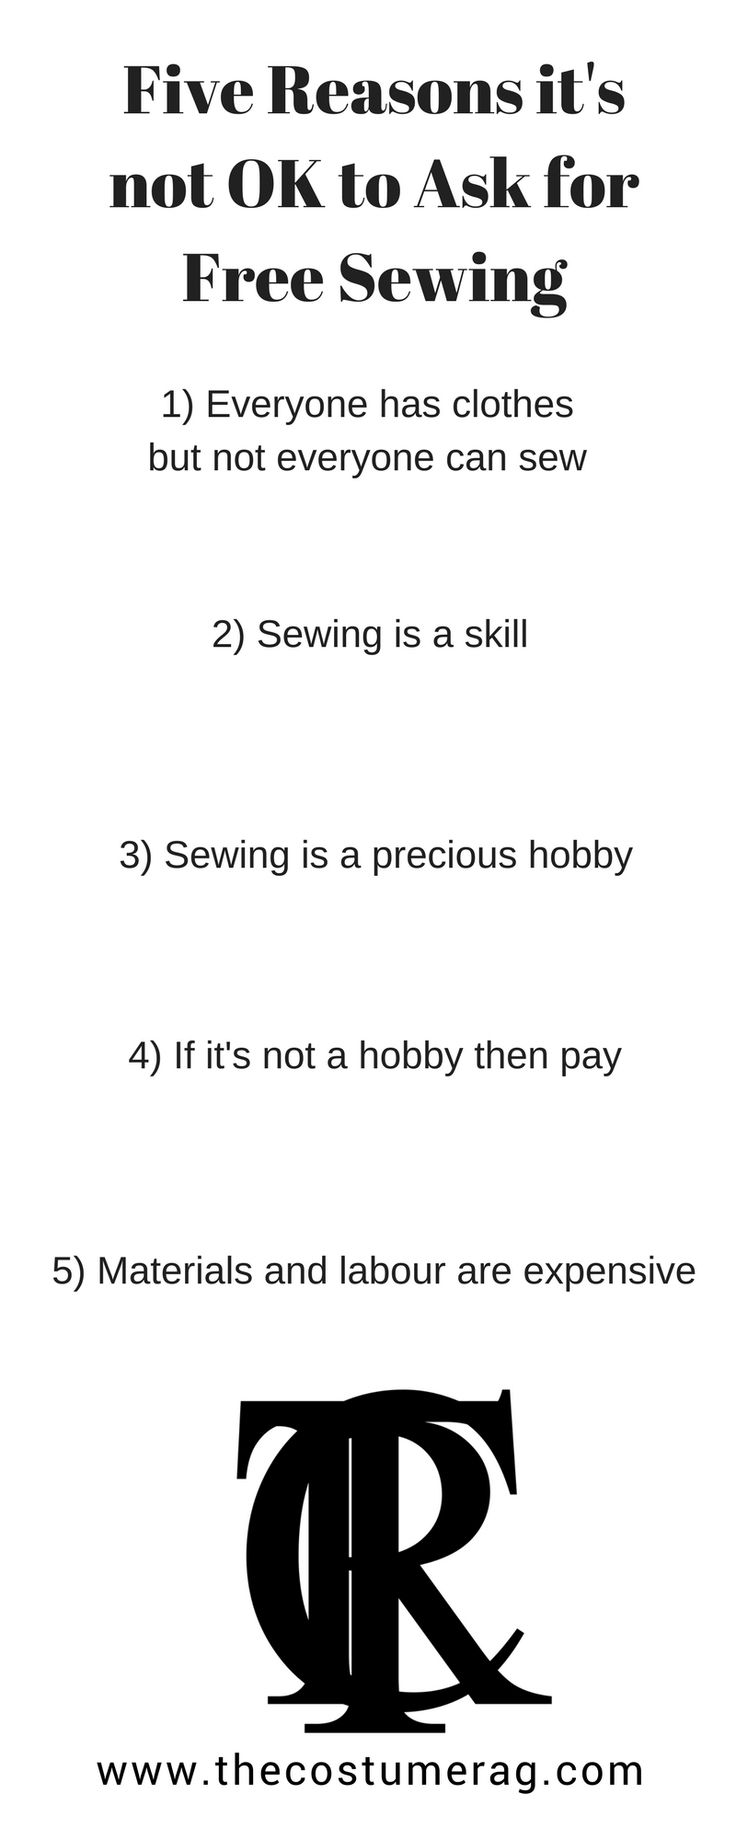 infographic why it's not ok to ask for free sewing